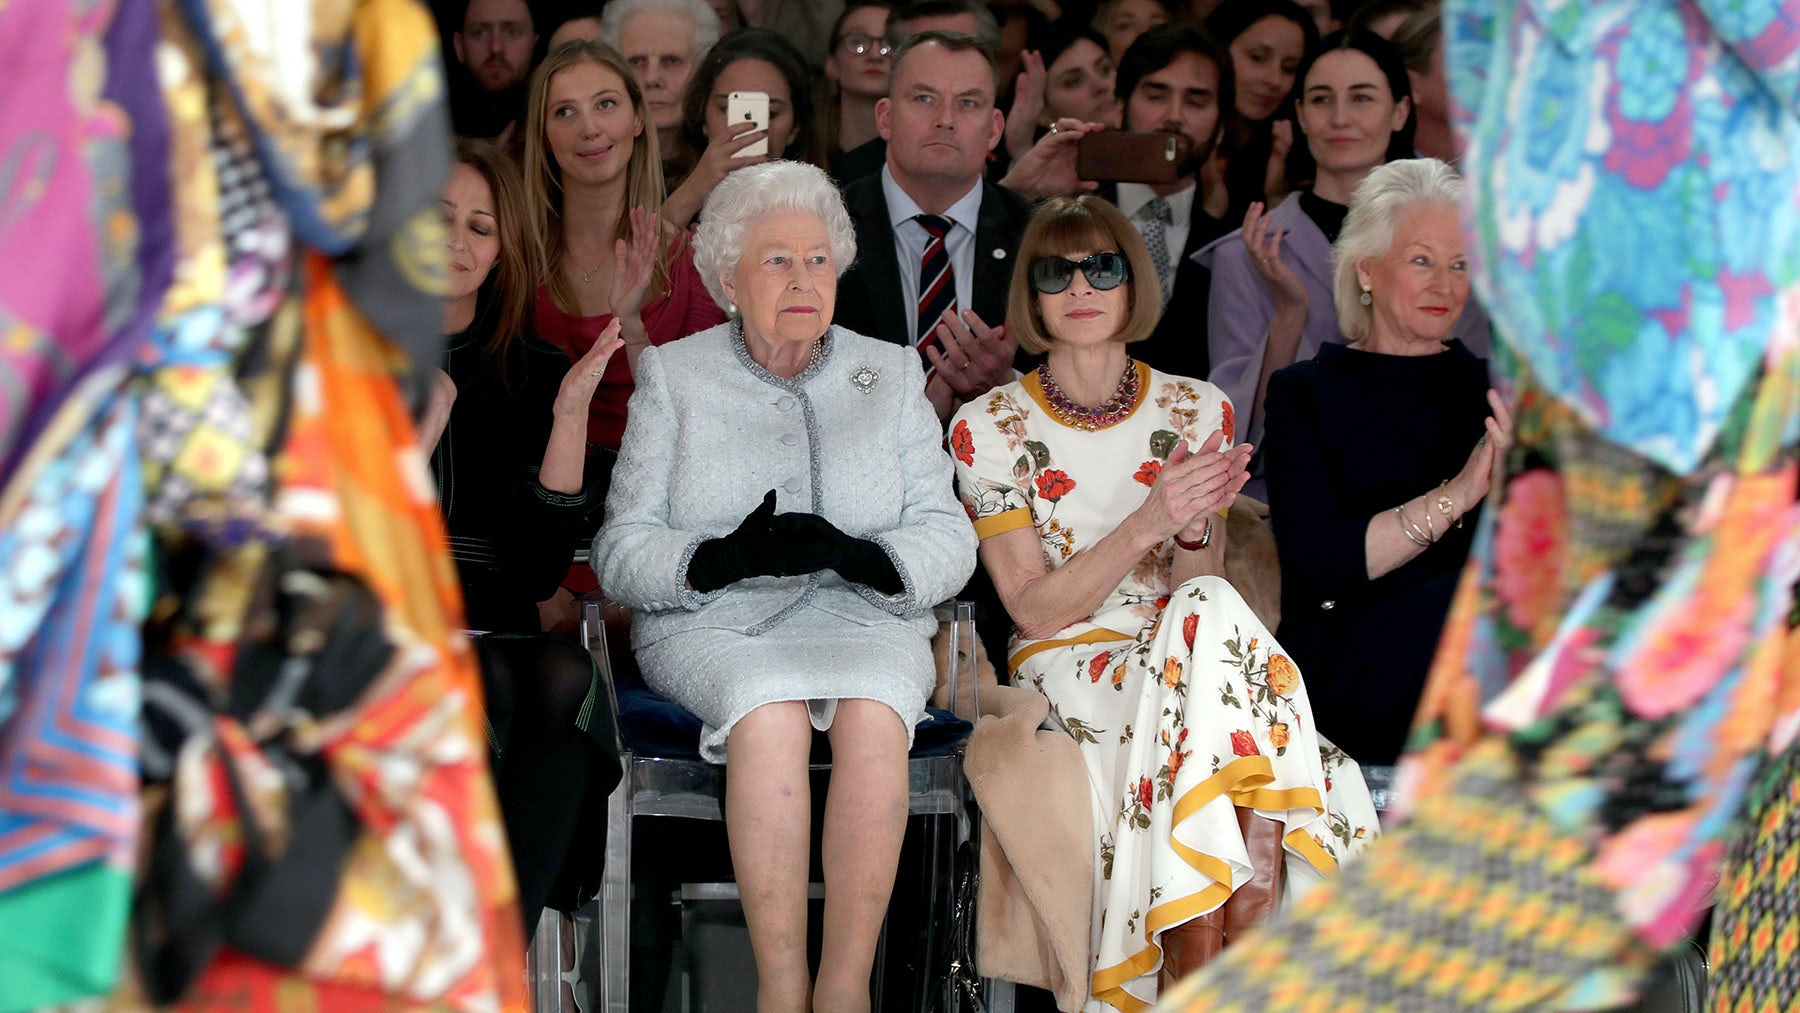 Queen Elizabeth II and Anna Wintour at Richard Quinn's Autumn/Winter 2018 show | Source: Yui Mok/AFP/Getty